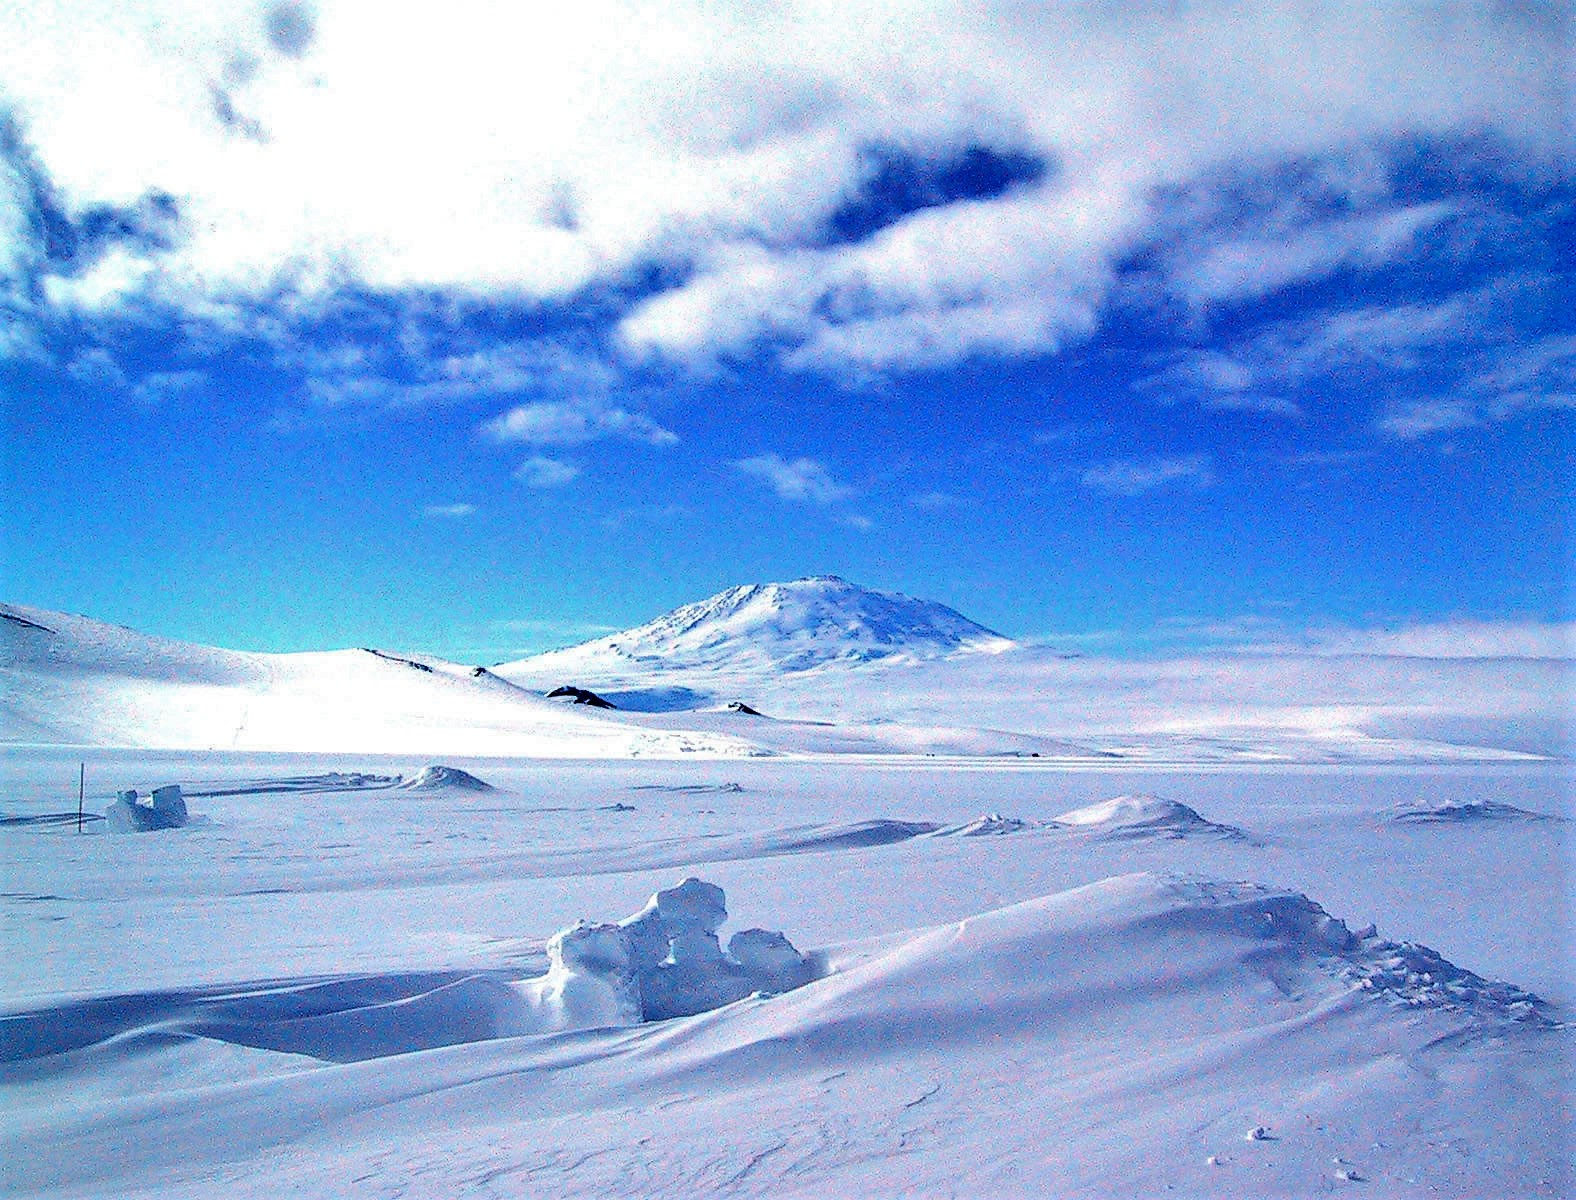 The Antarctic Ice Sheet covers an area larger than the U.S. and Mexico combined. This photo shows Mt. Erebus rising above the ice-covered continent. Credit: Ted Scambos & Rob Bauer, NSIDC